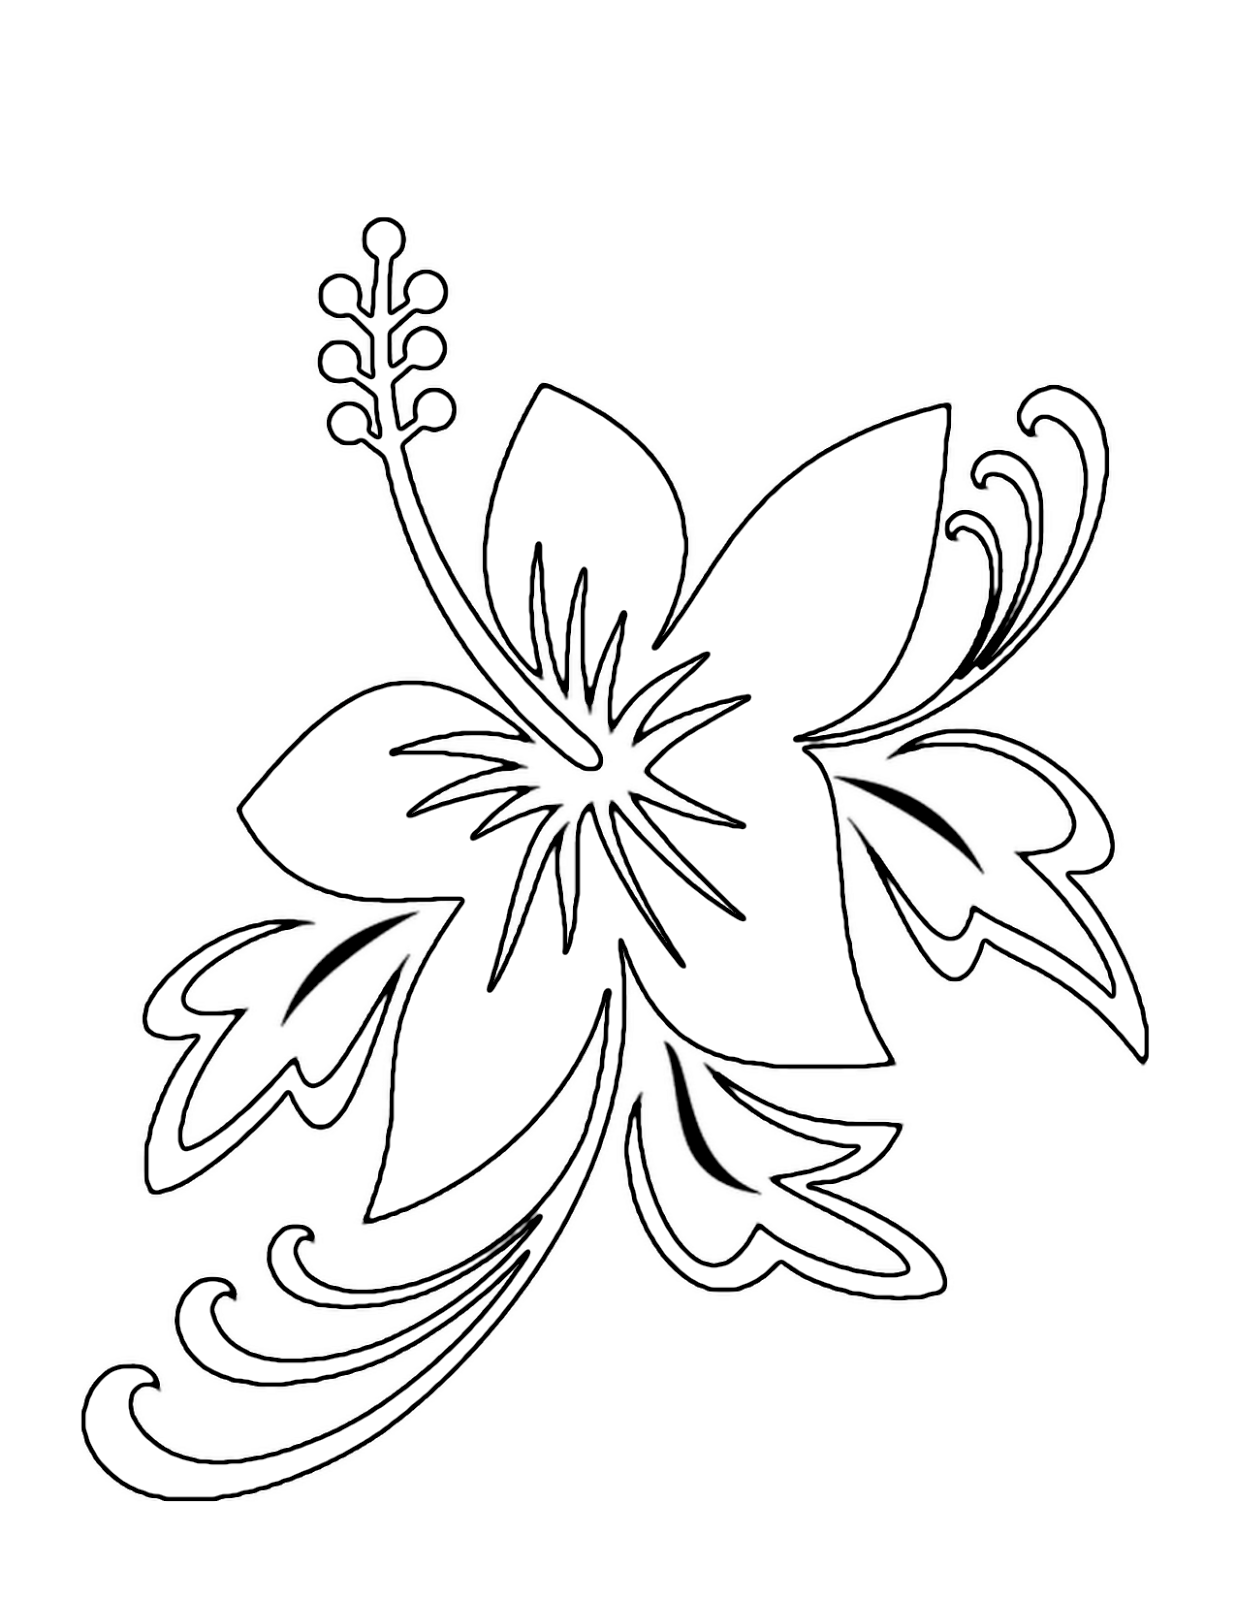 Tropical garden clipart for coloring jpg royalty free download Free Tropical Flower Drawings, Download Free Clip Art, Free ... jpg royalty free download